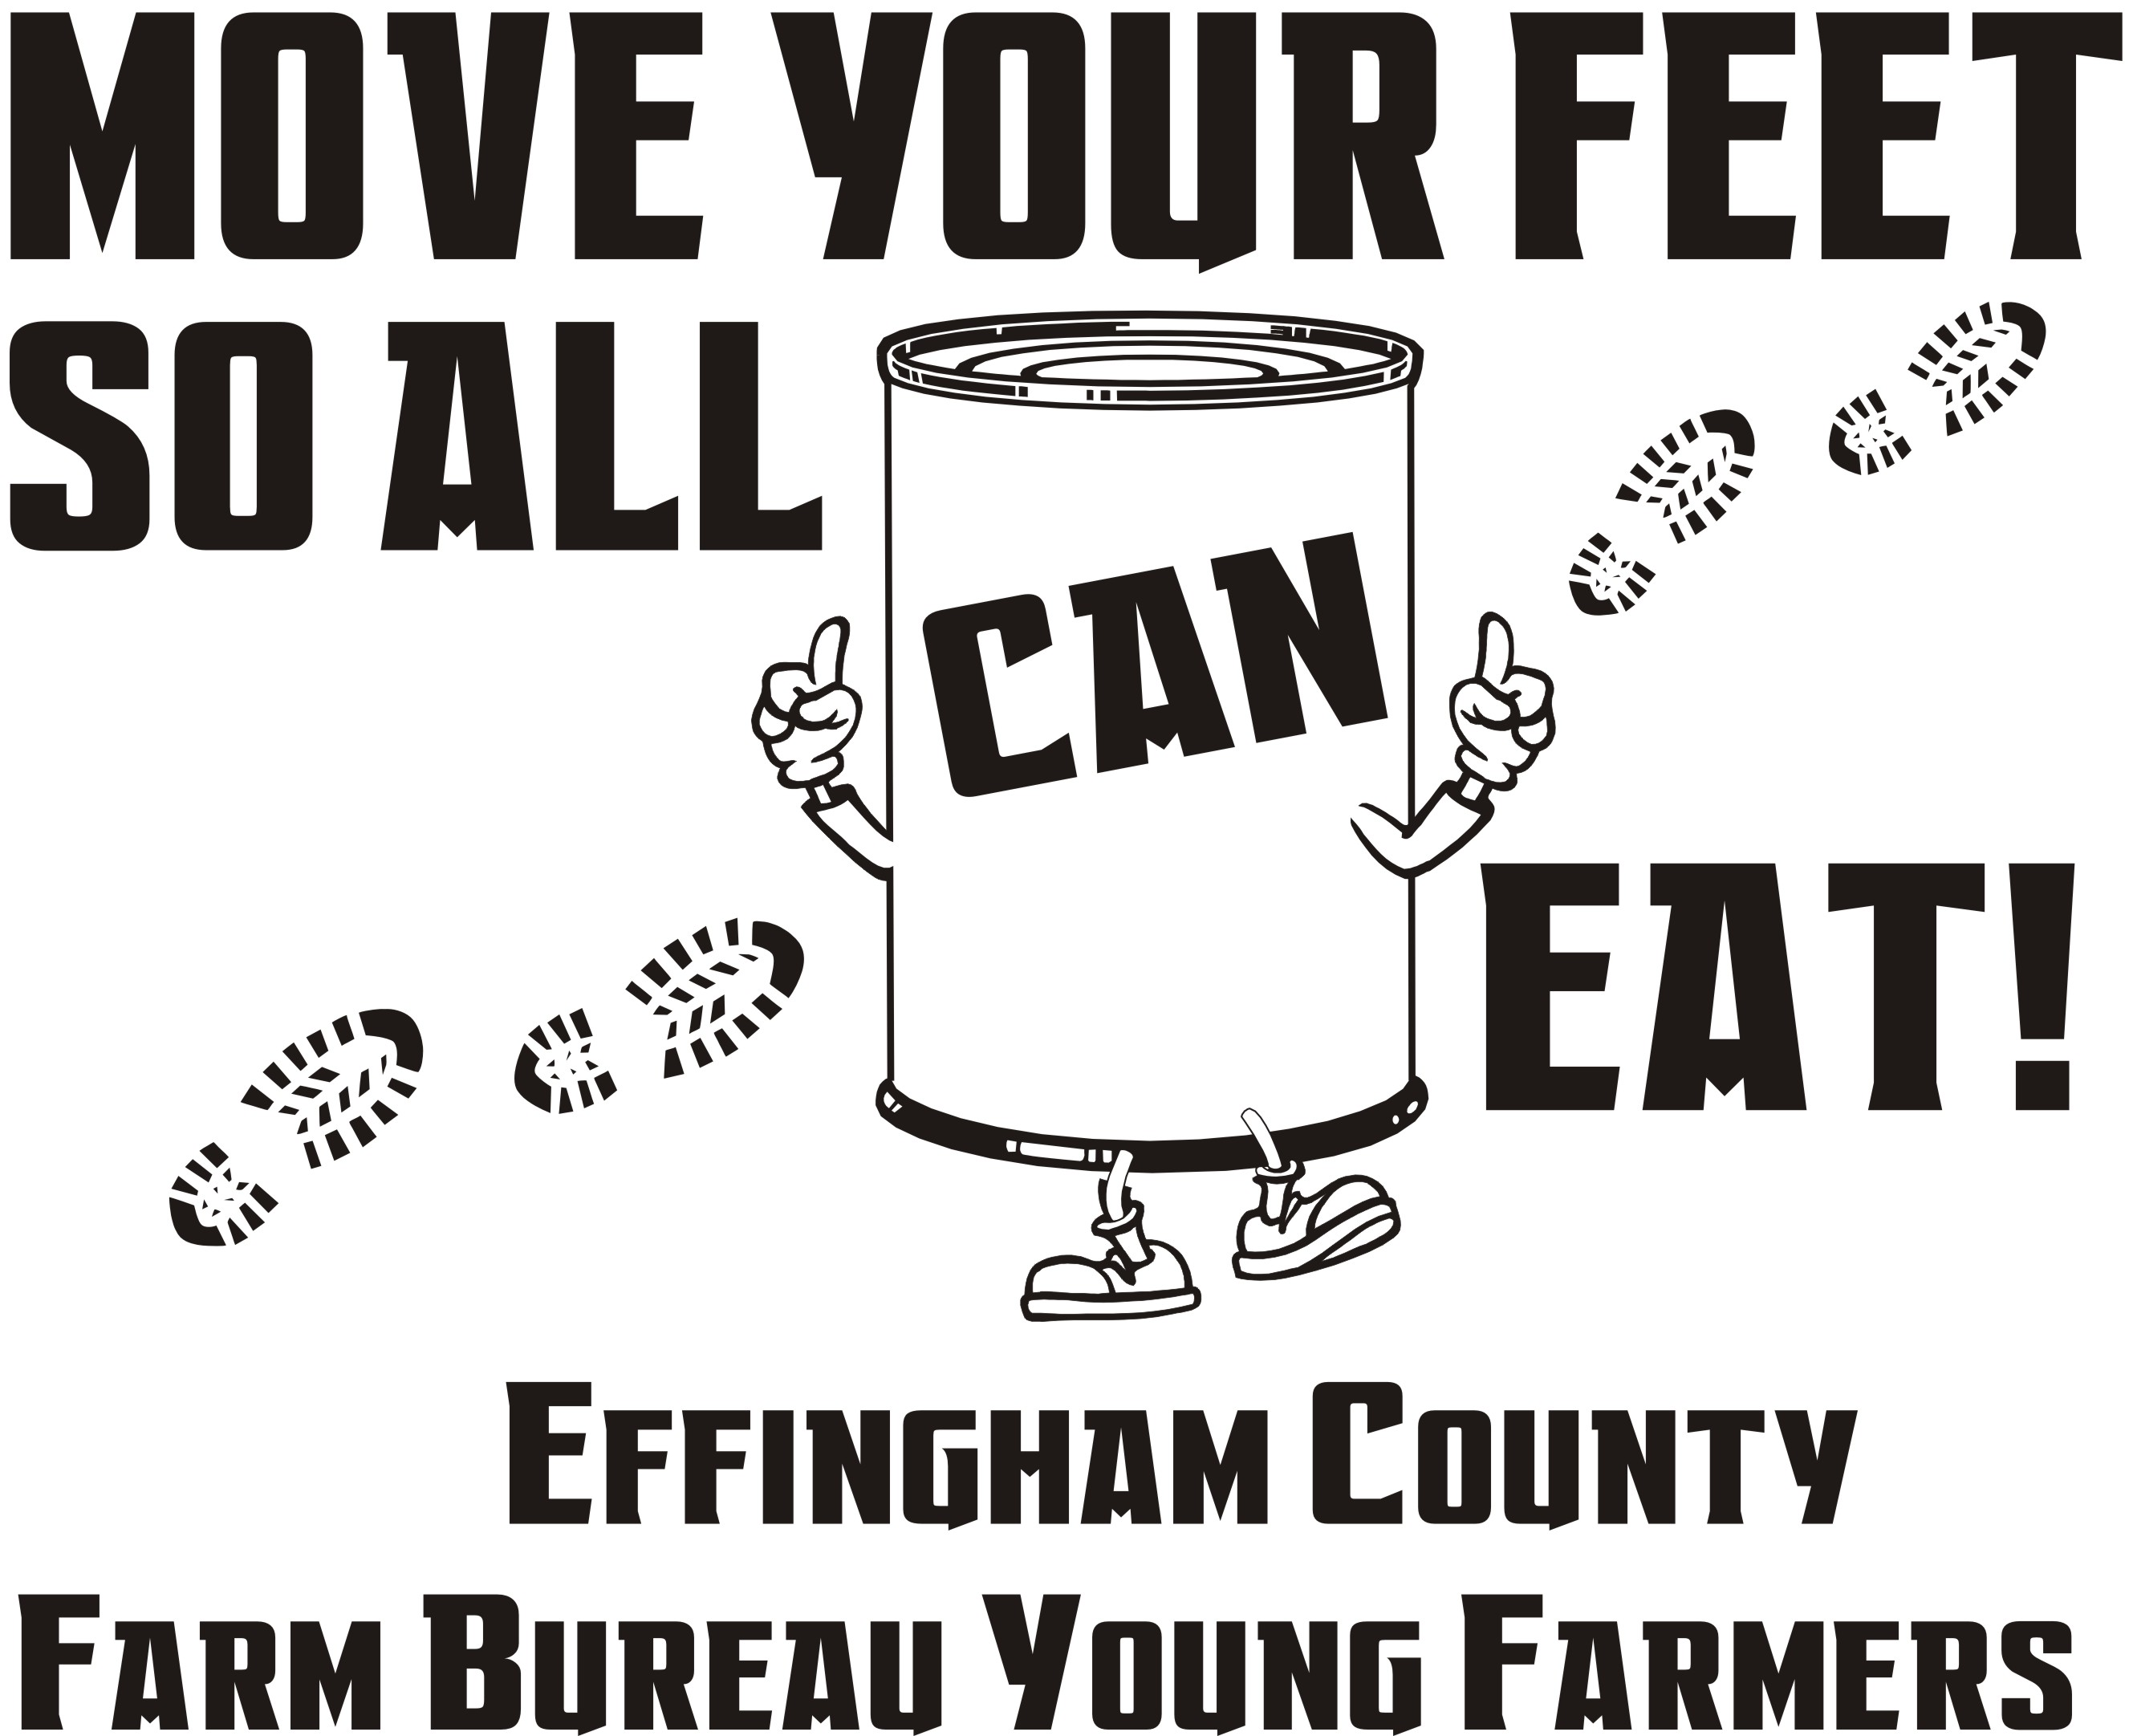 Illinois effingham county teutopolis - Move Your Feet So All Can Eat